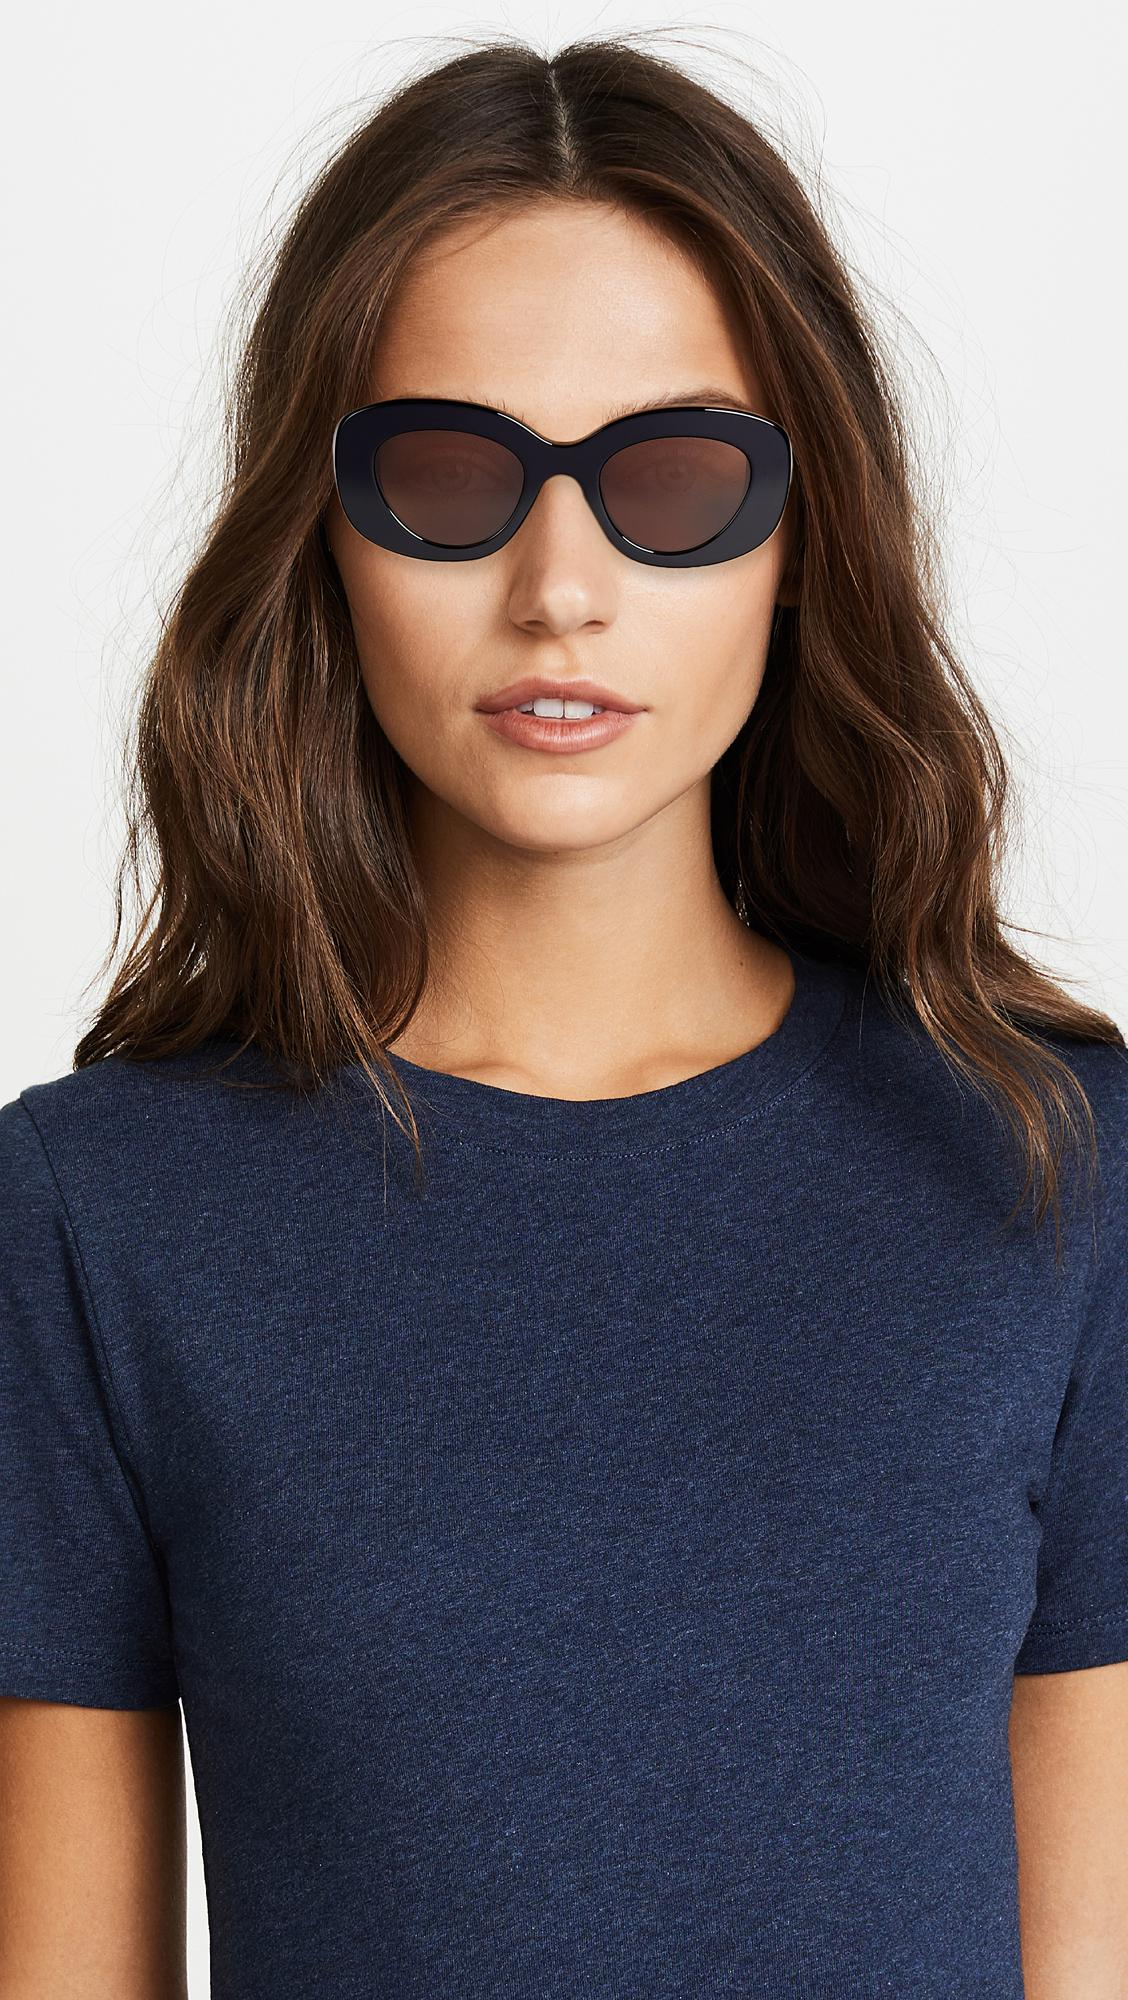 94d1fcc93a Lyst - Elizabeth and James Fray Sunglasses